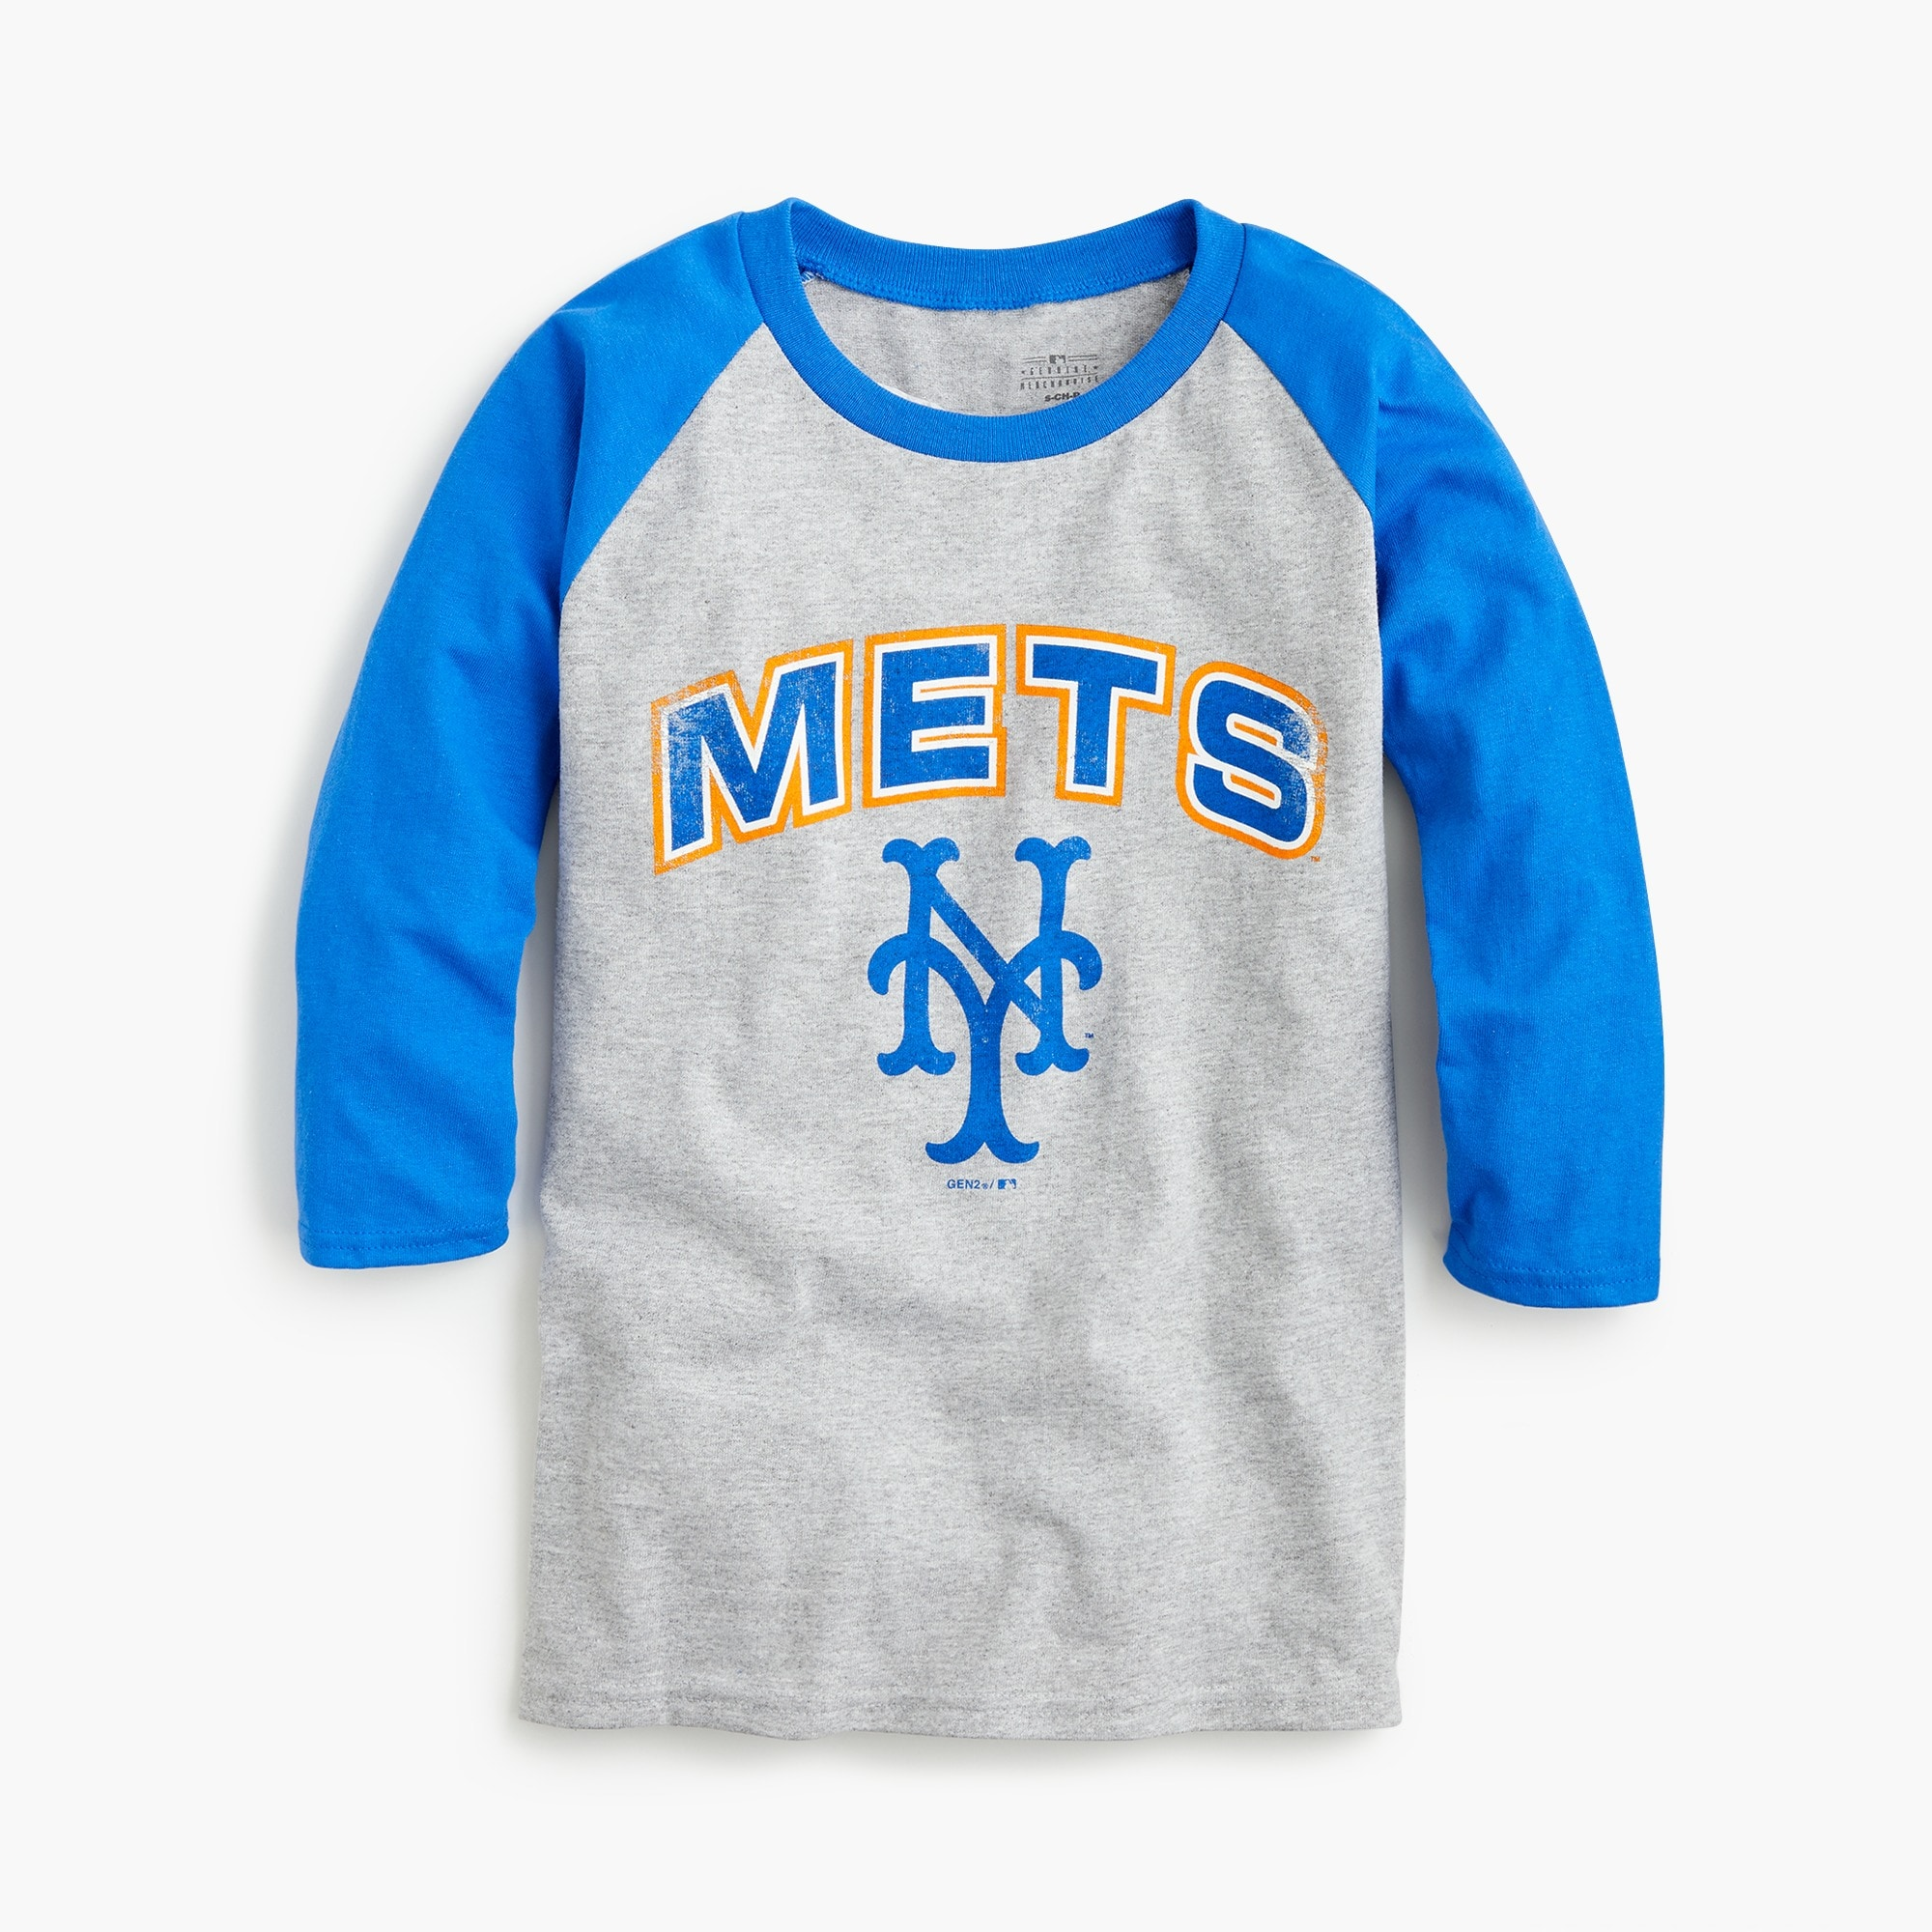 Kids' New York Mets baseball T-shirt boy graphics shop c